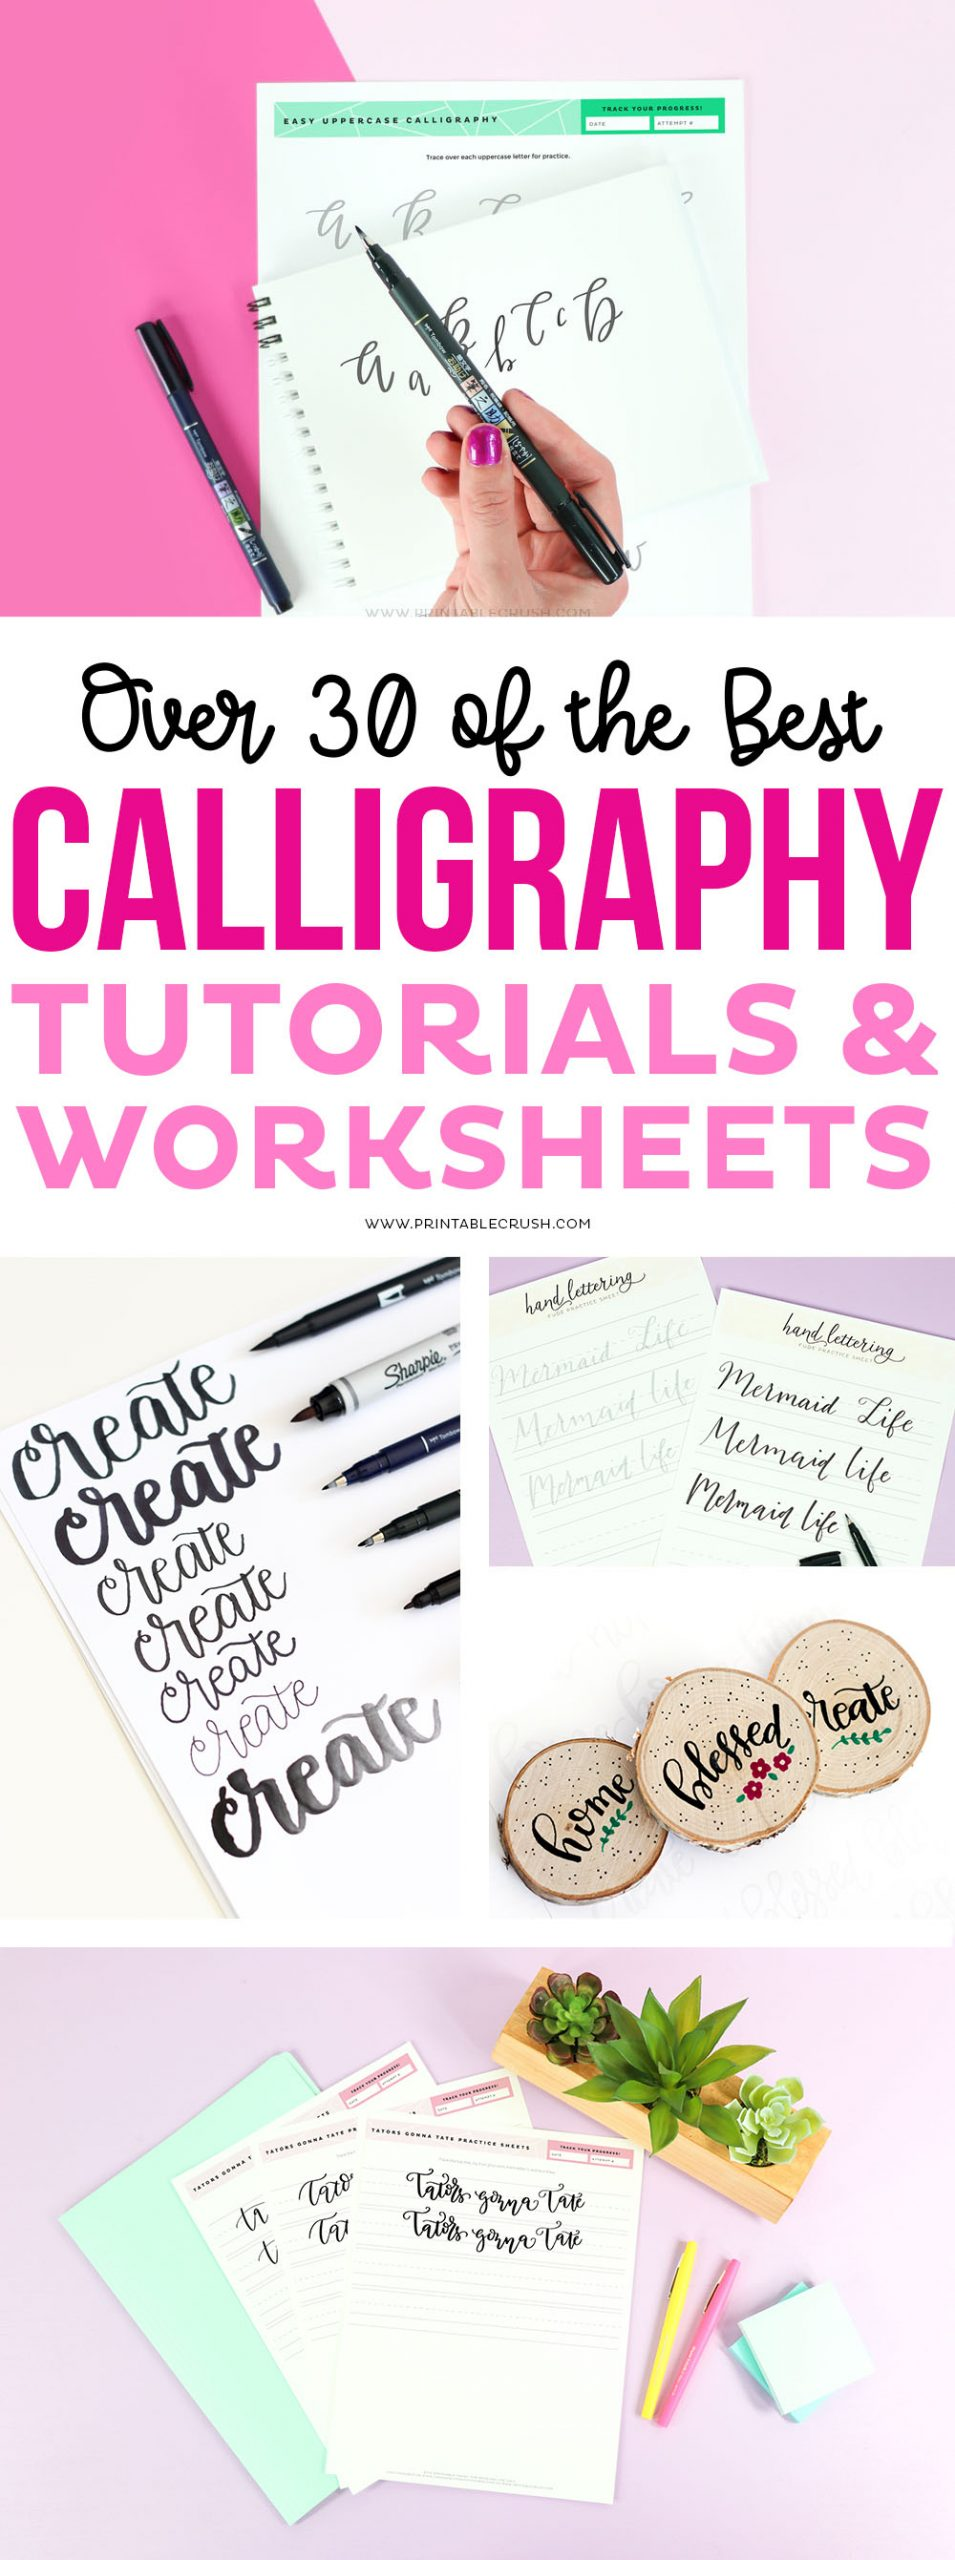 Over 30 of the Best Calligraphy Tutorials and Worksheets via @printablecrush